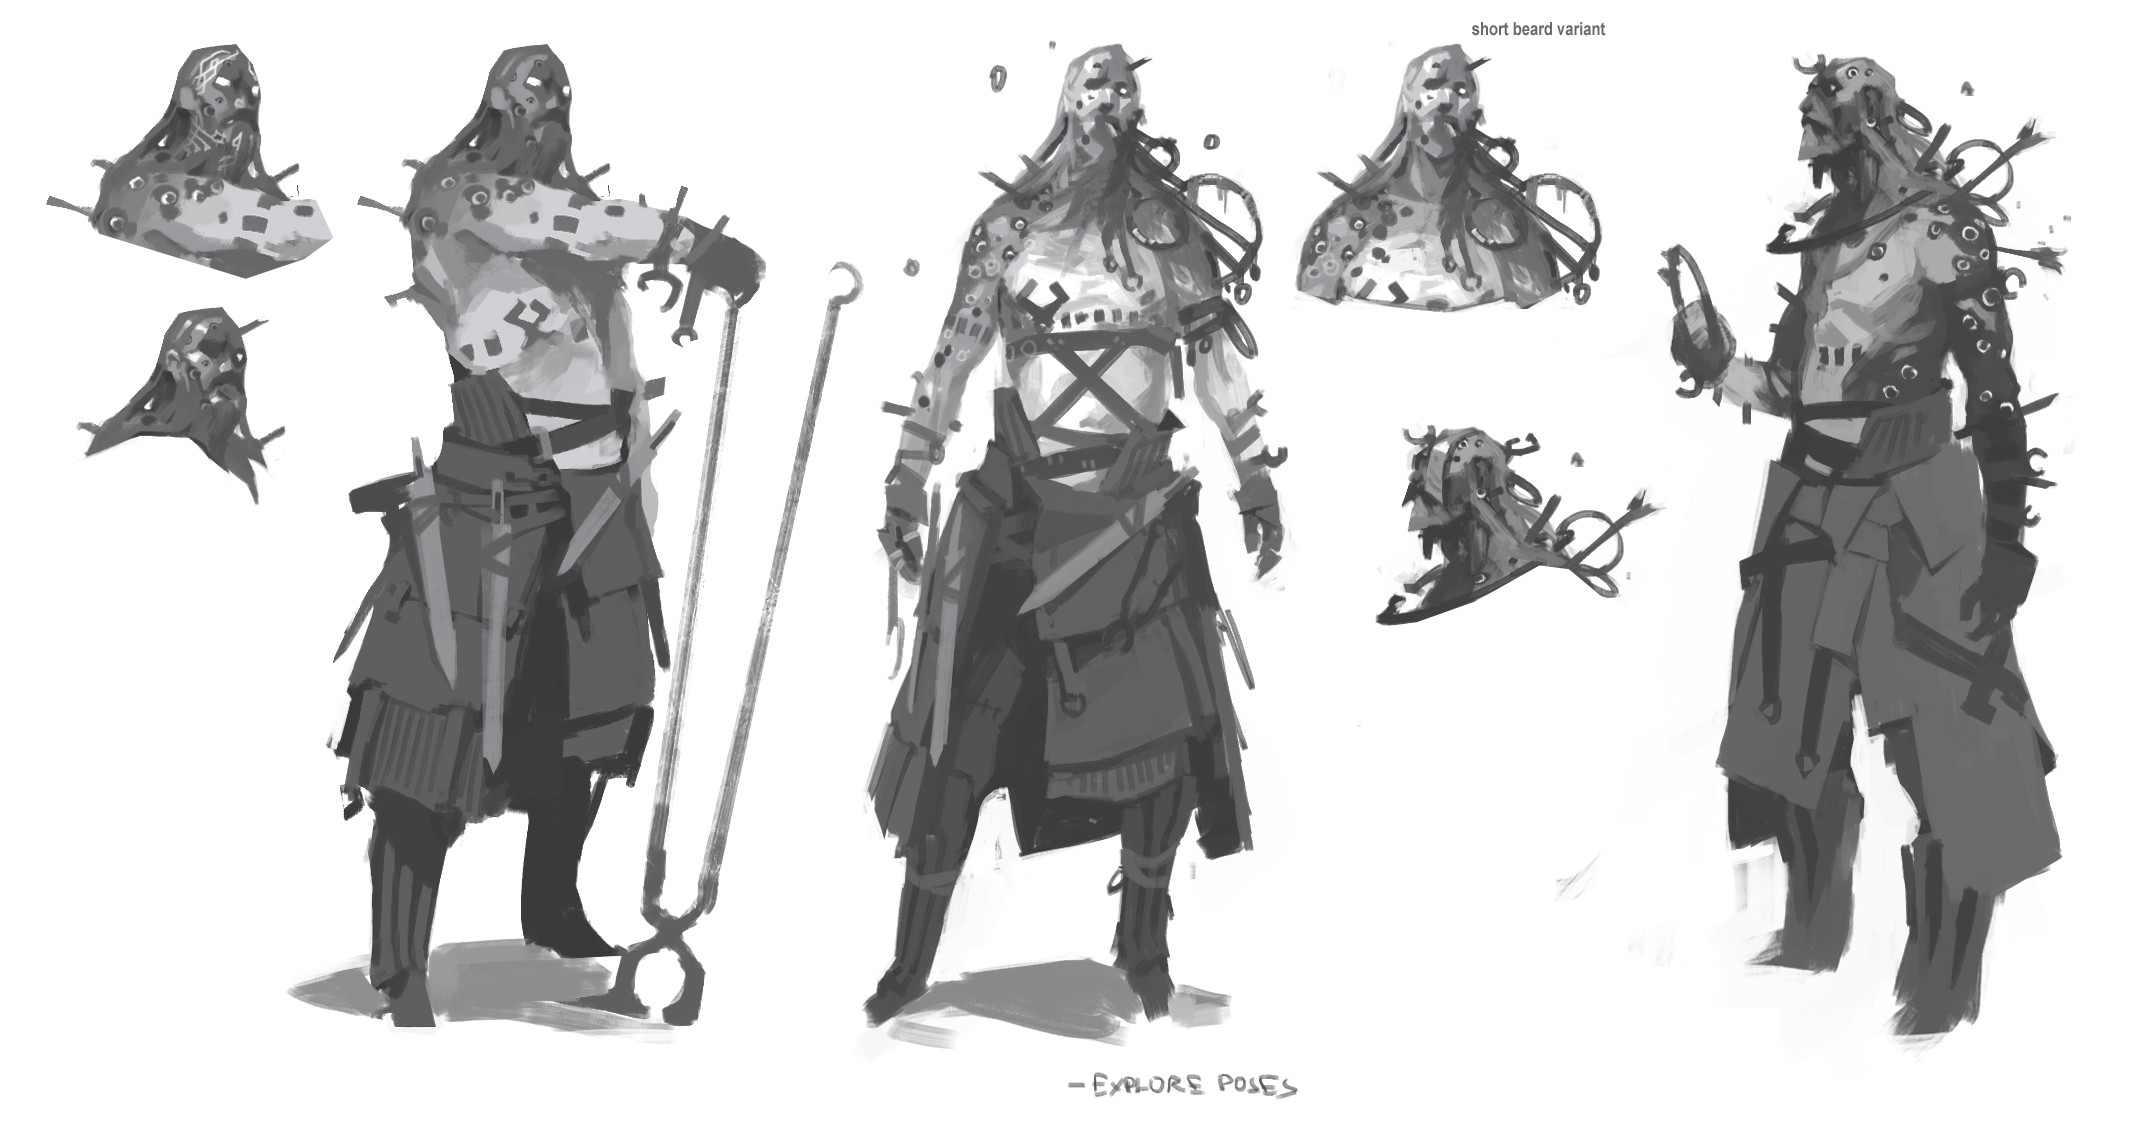 Introduction to concept art- How to start? - thang pham - Medium